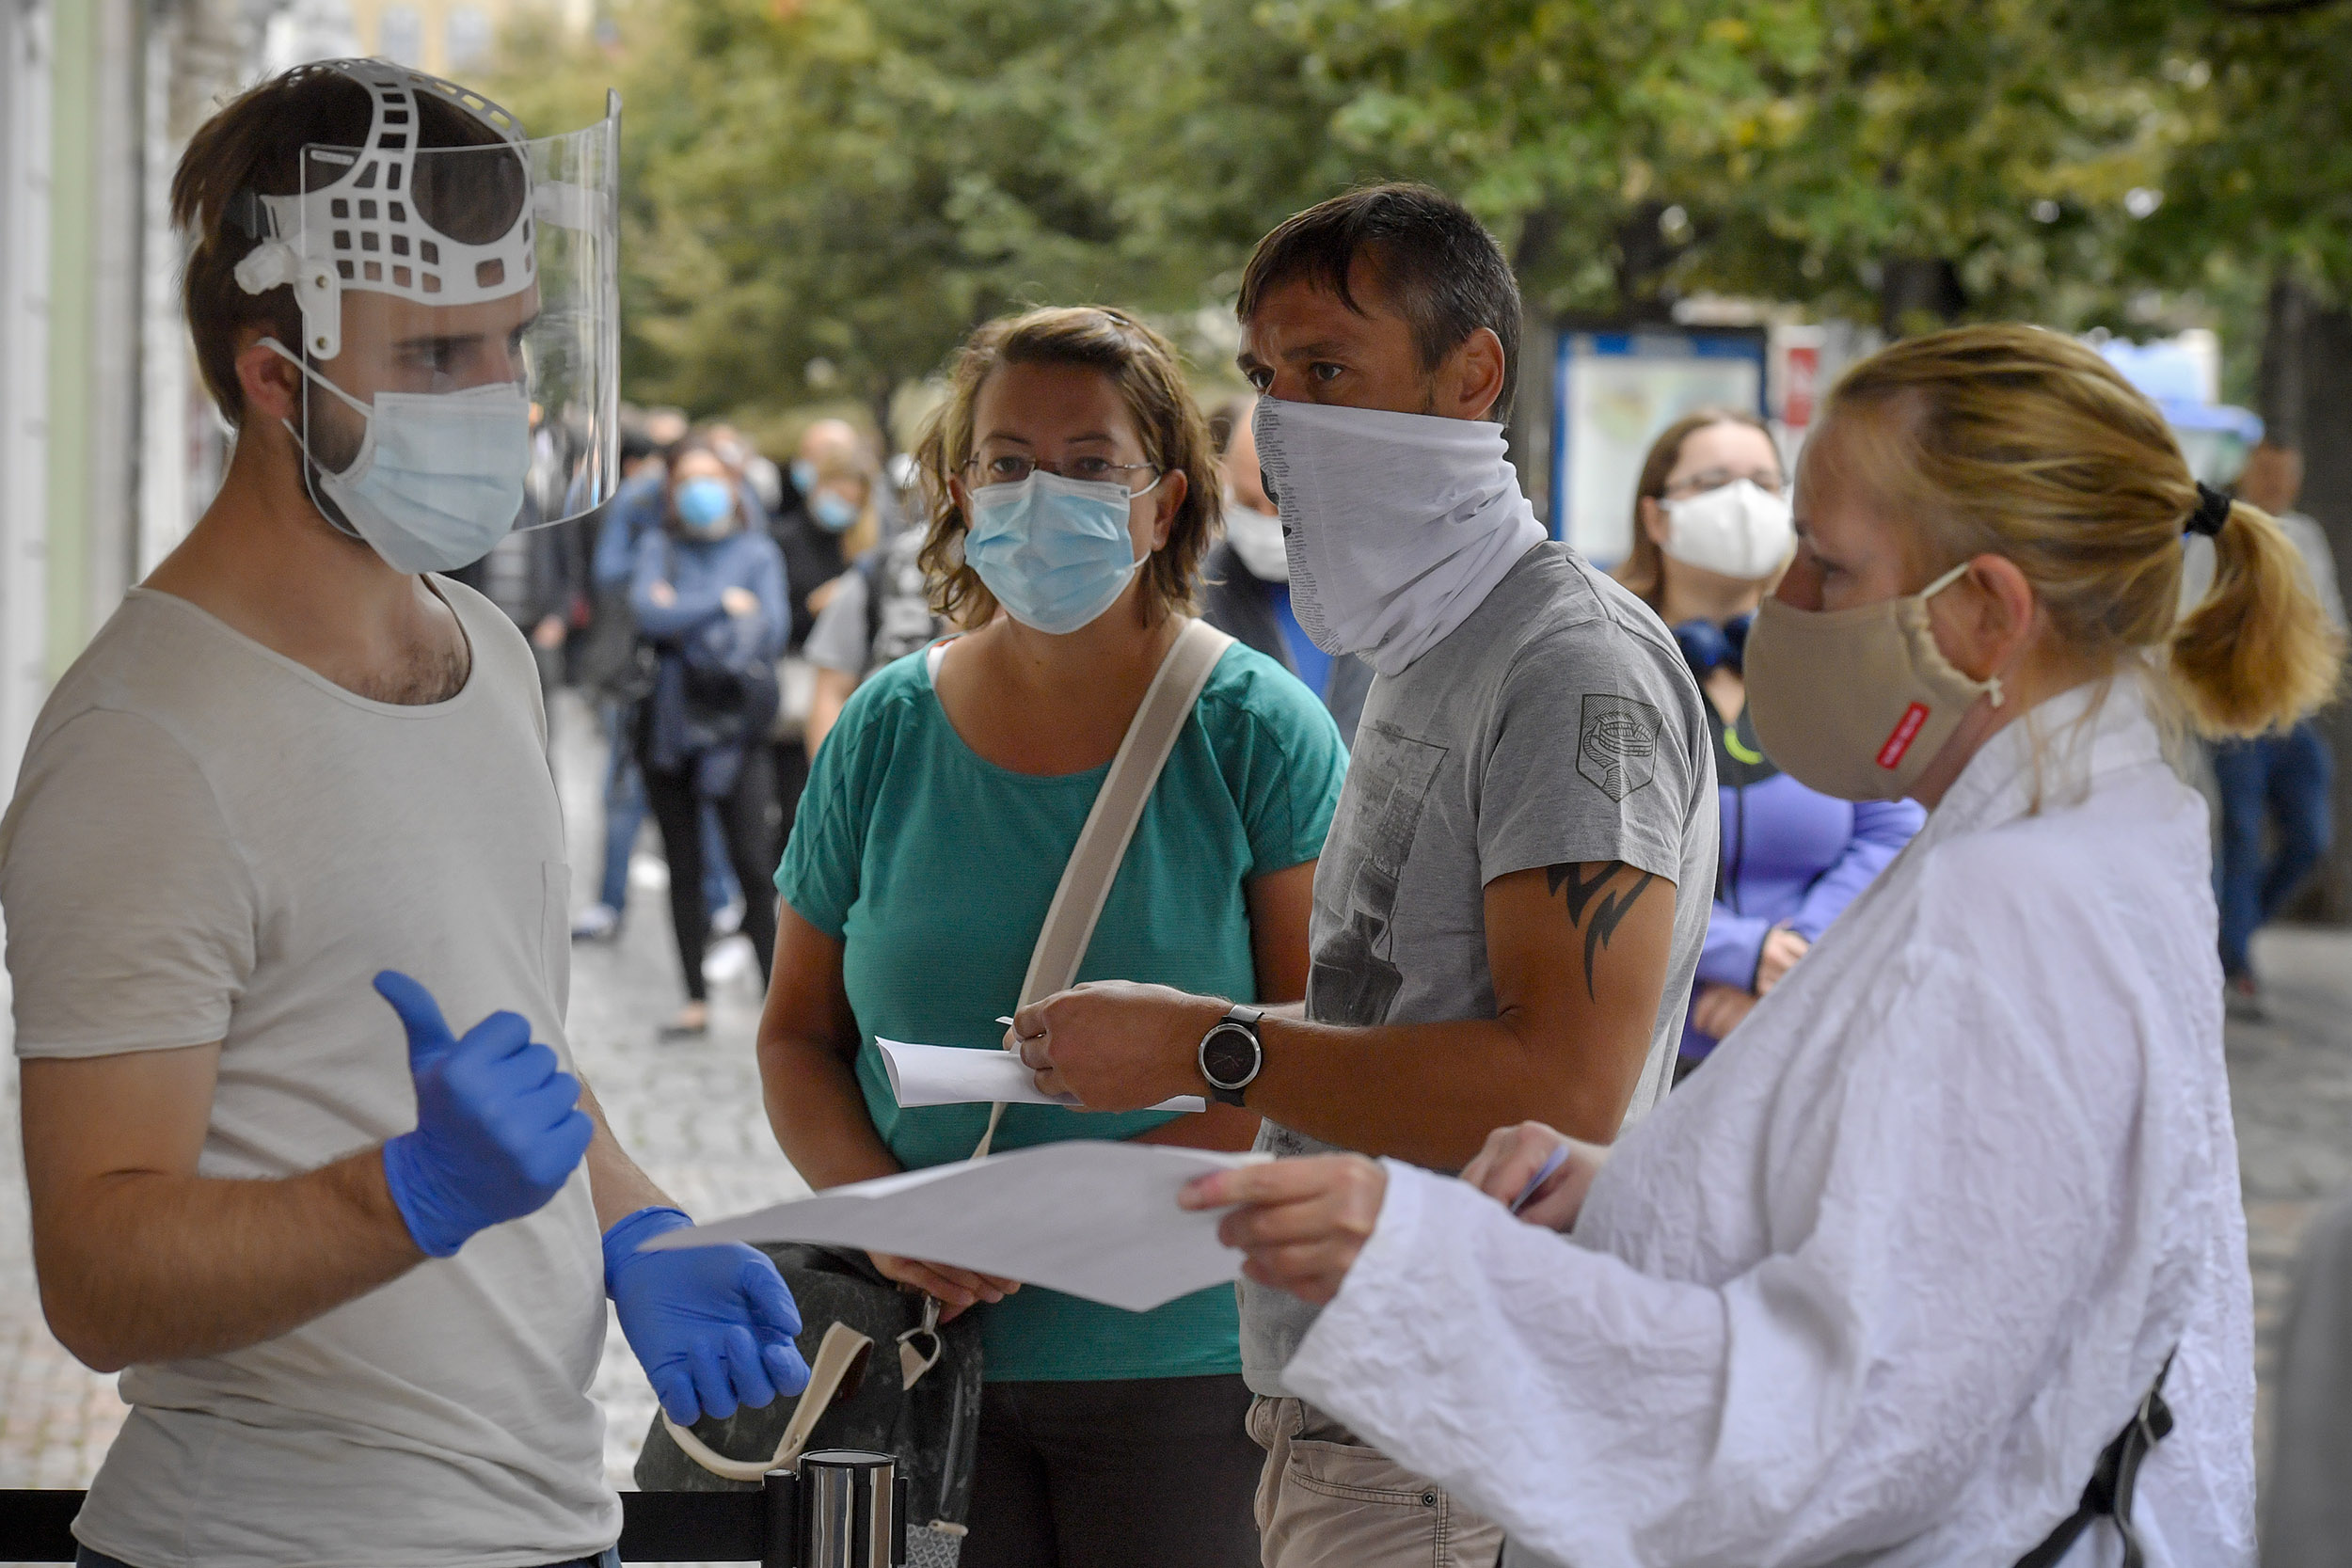 People wait to get tested at COVID-19 testing site in Wenceslas Square in Prague, Czech Republic, on September 10, 2020.